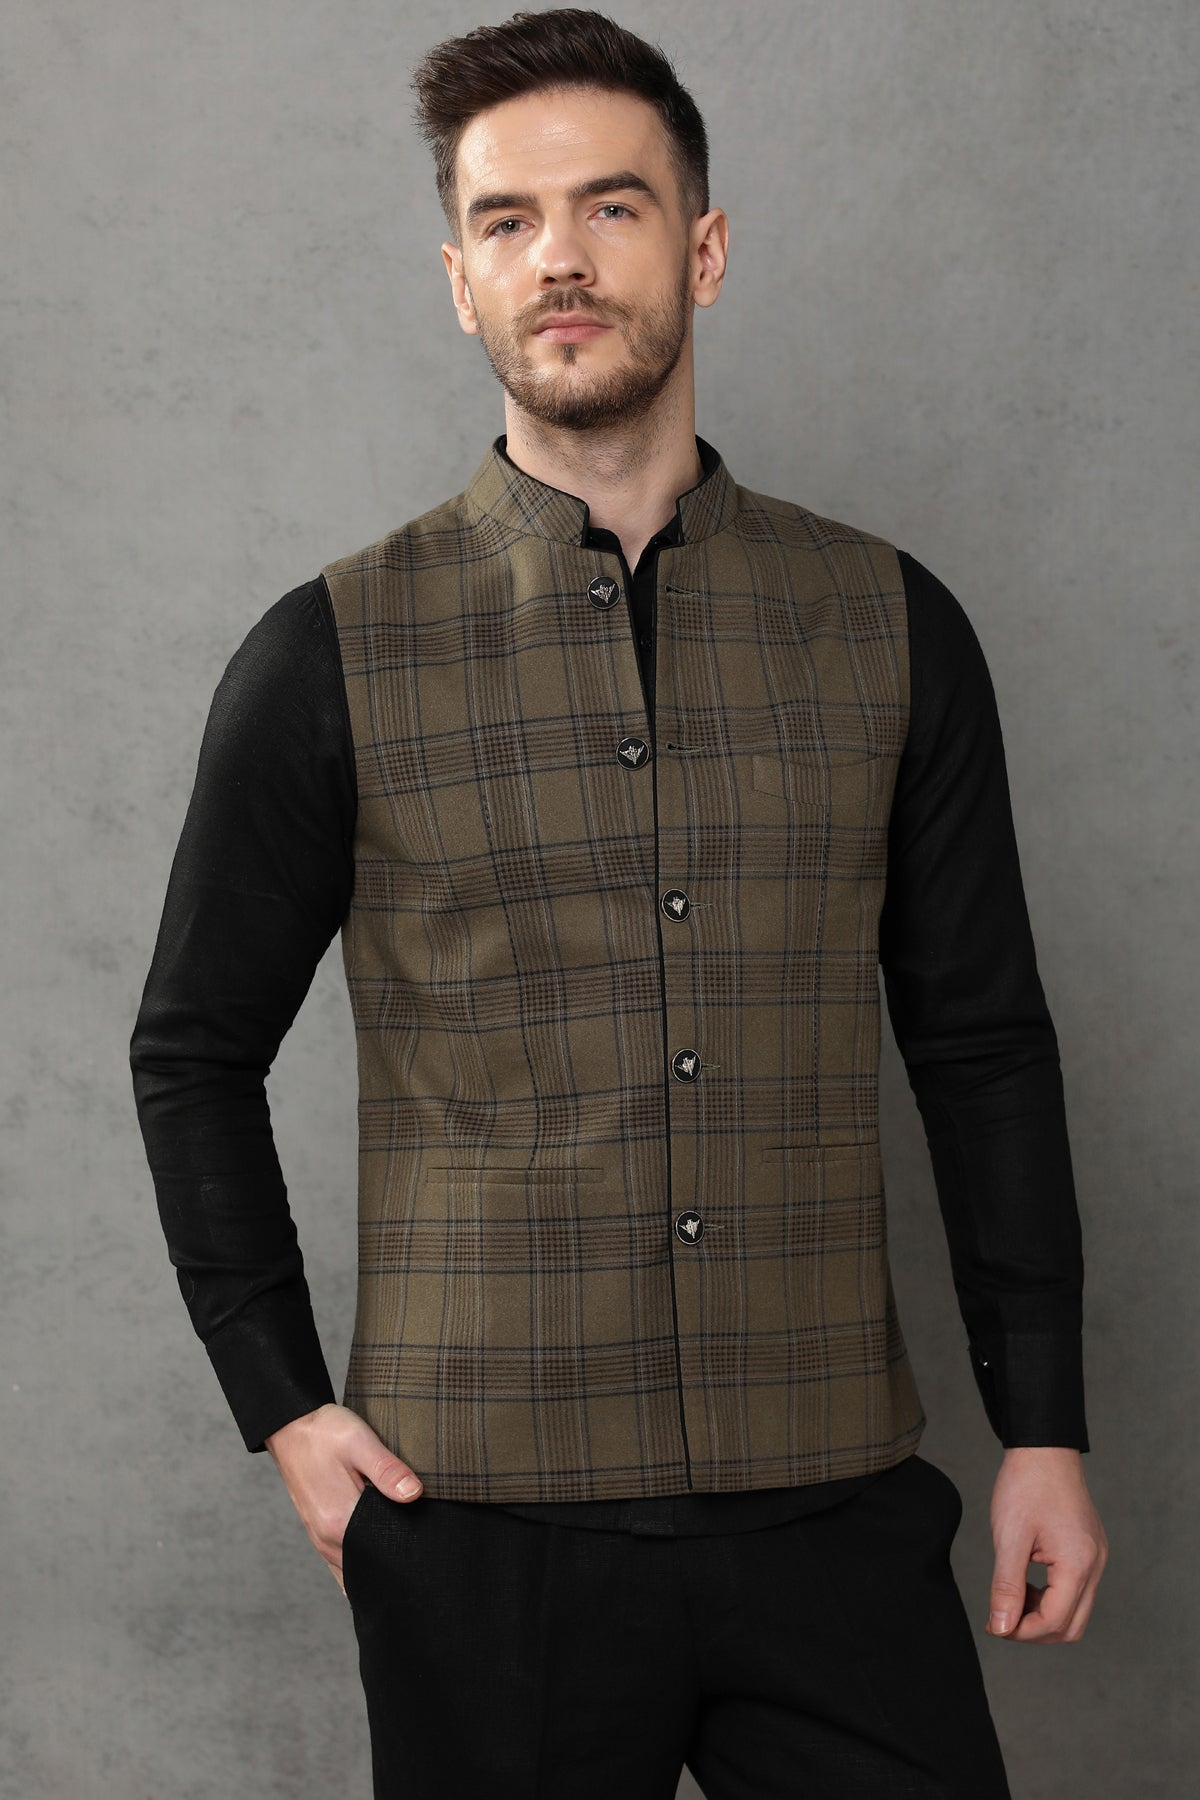 The Oh-So-Hot Nehru Jacket